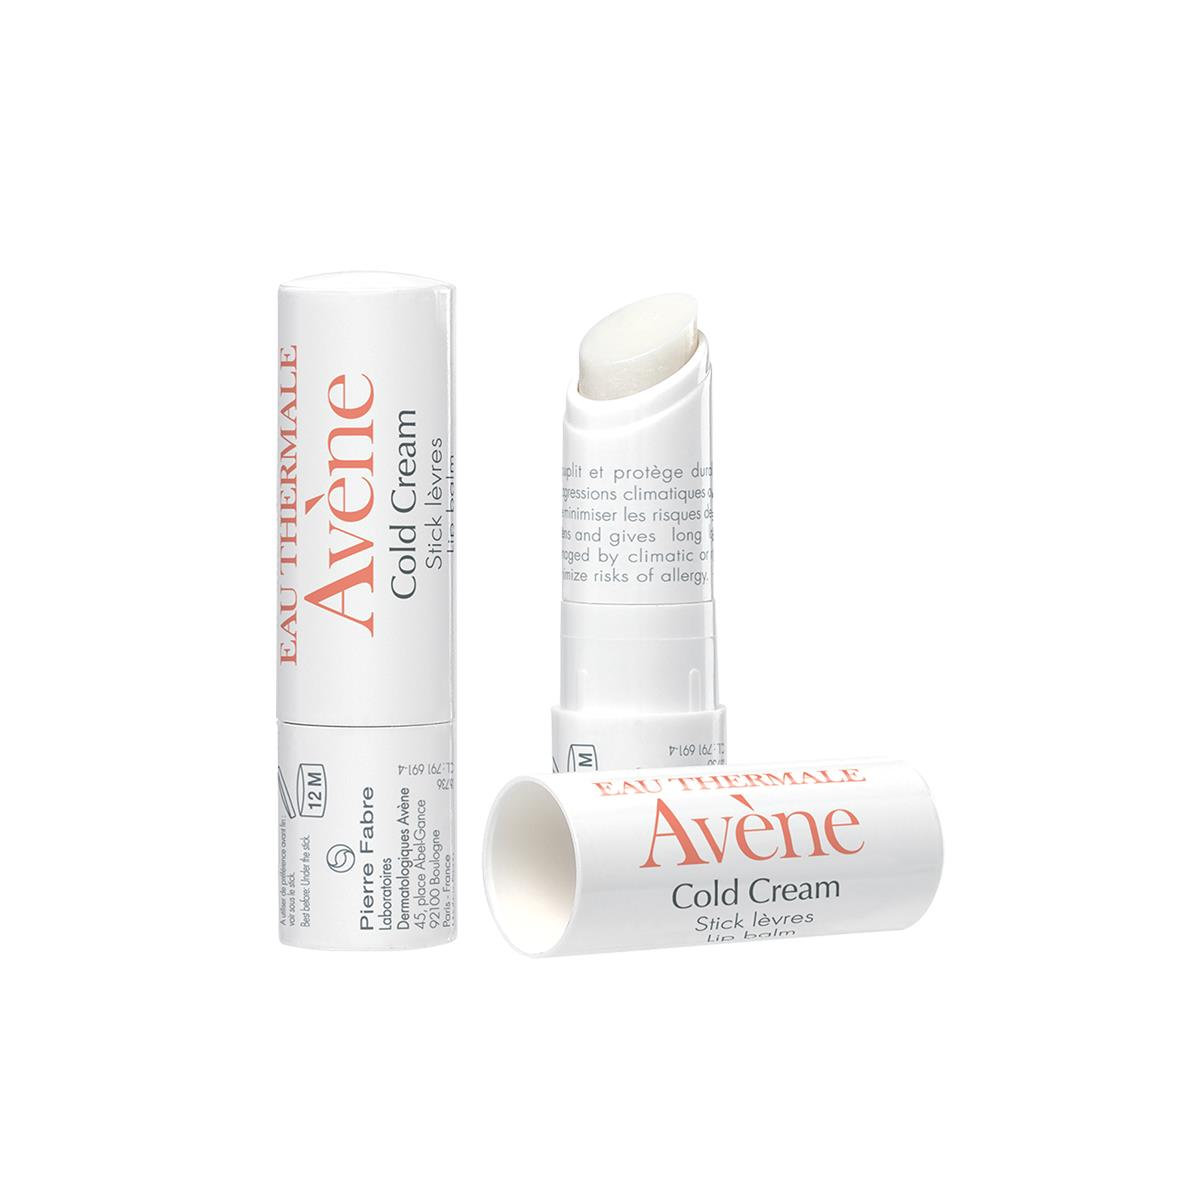 Avene Cold Cream Lápiz Labial 4G